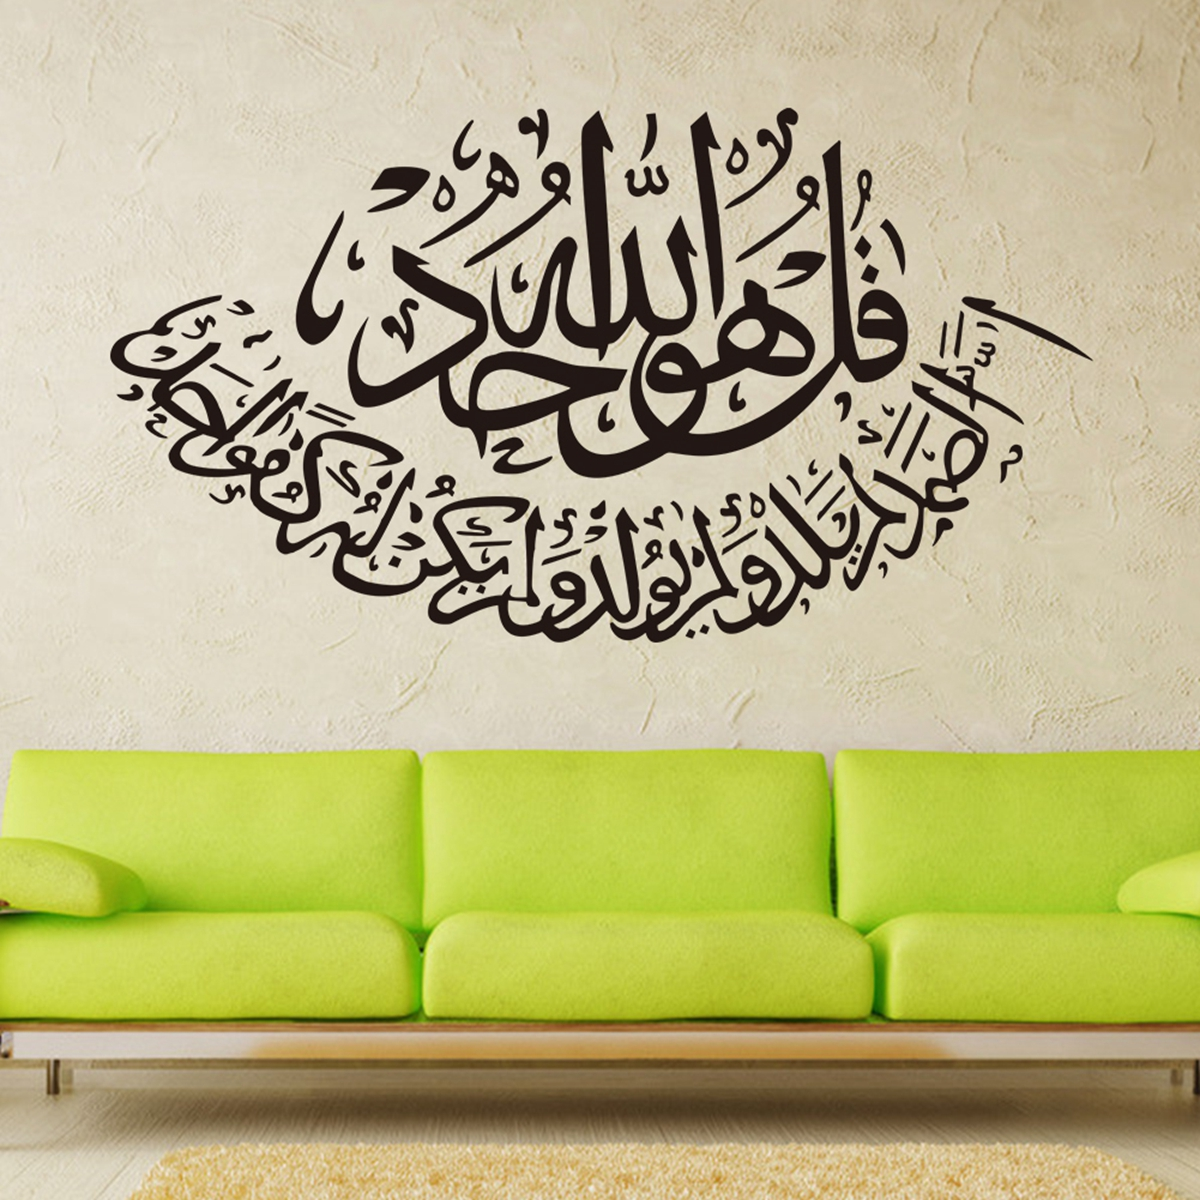 Islamic Inspiration Sticker Muslim Wall Art Arabic Bismillah Quran Calligraphy